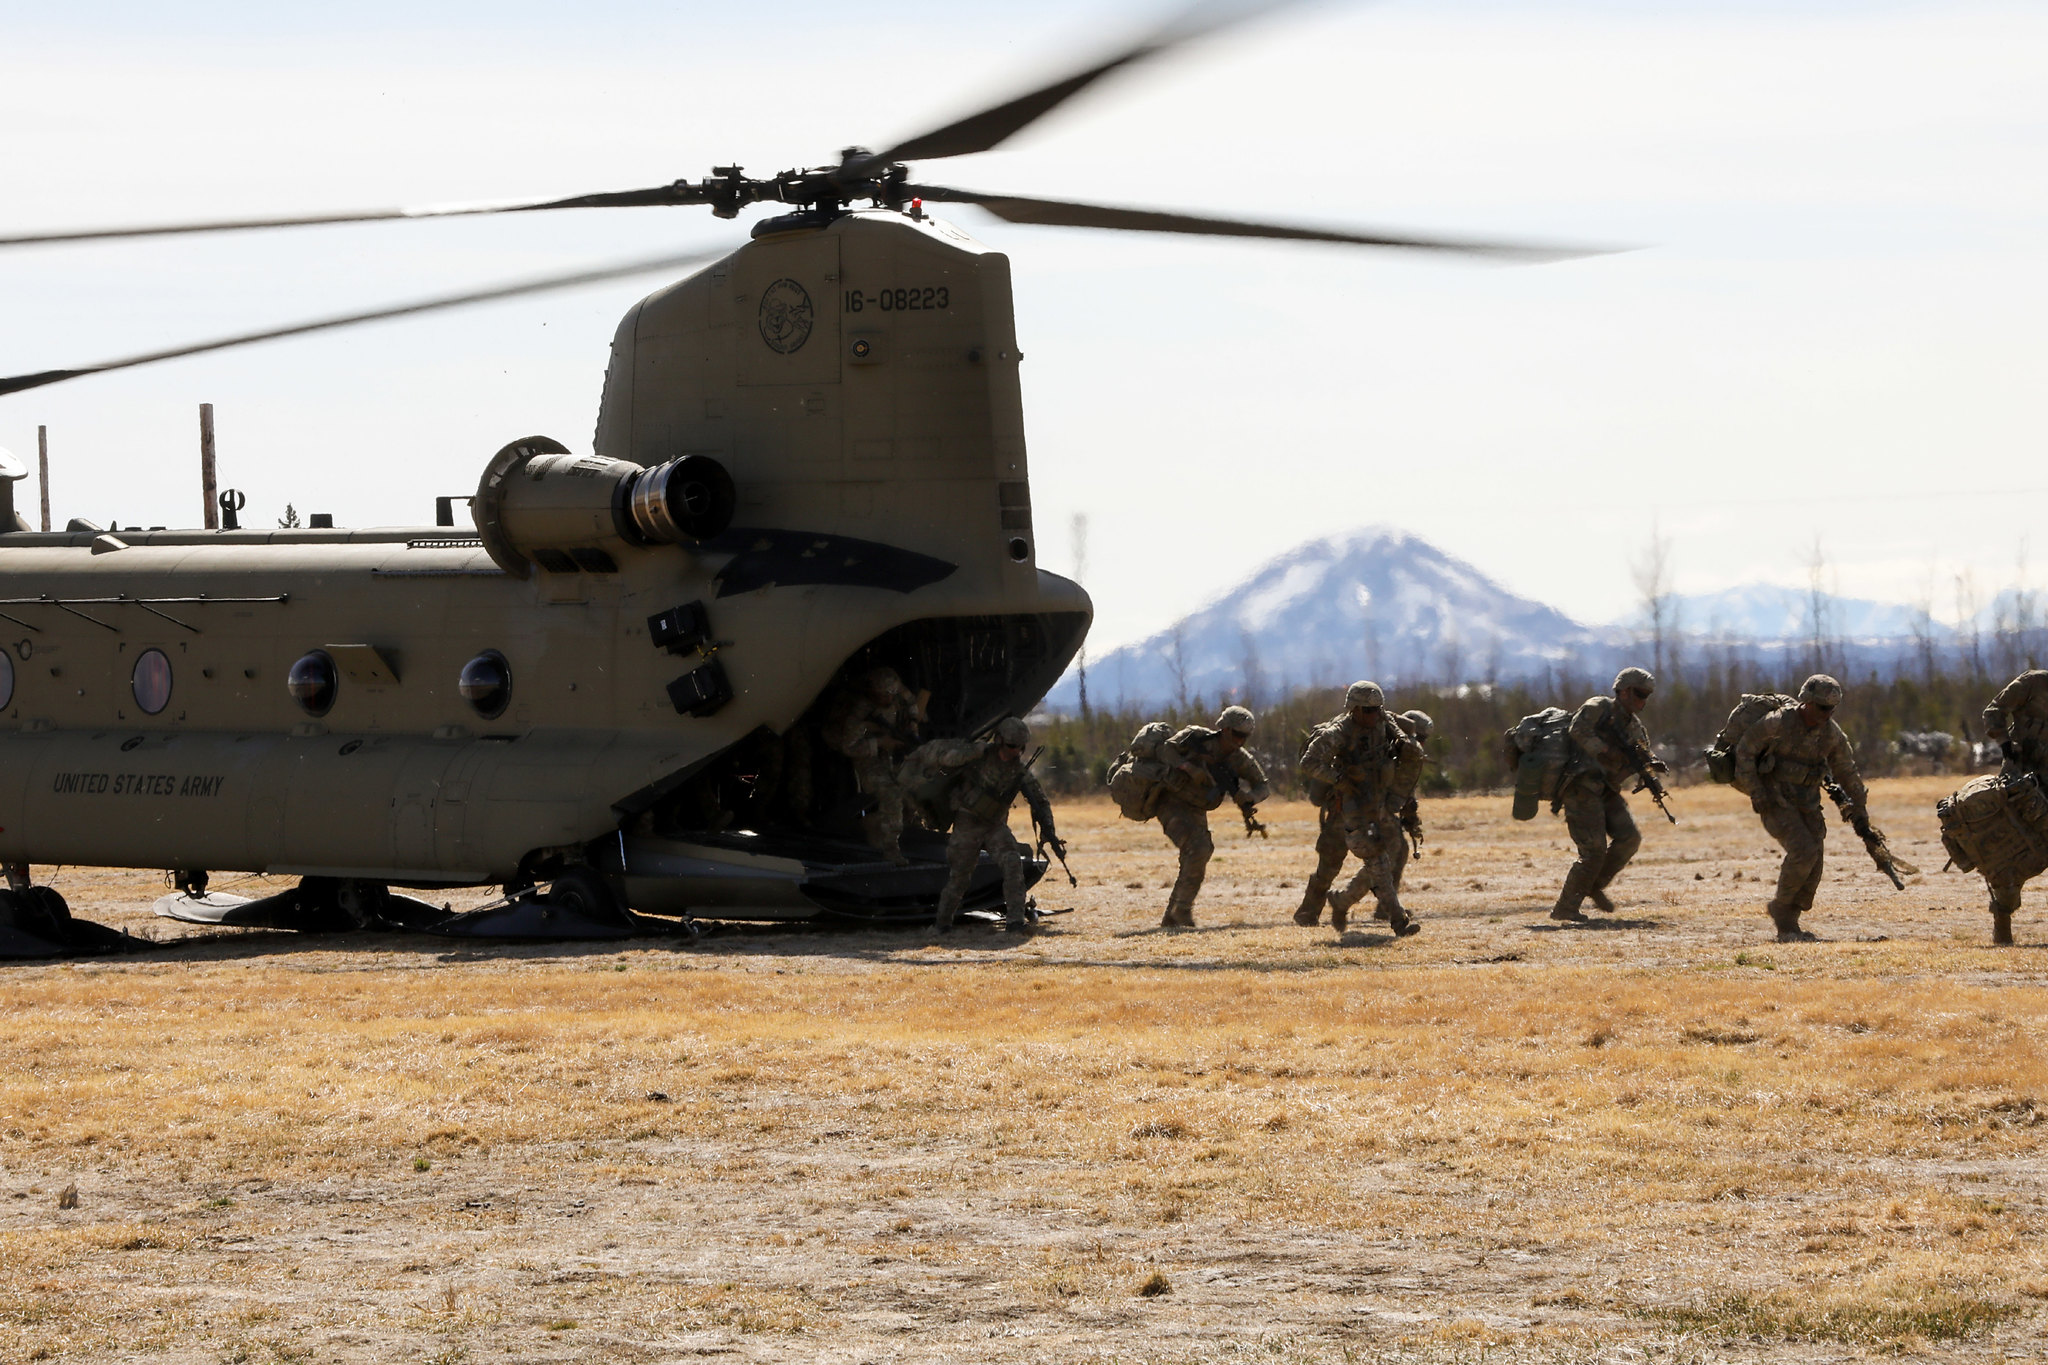 Paratroopers exit a CH-47 Chinook on May 10, 2021, as they conduct an air assault during exercise Northern Edge 21 at Fort Greely, Alaska. (Staff Sgt. Alex Skripnichuk/Army)